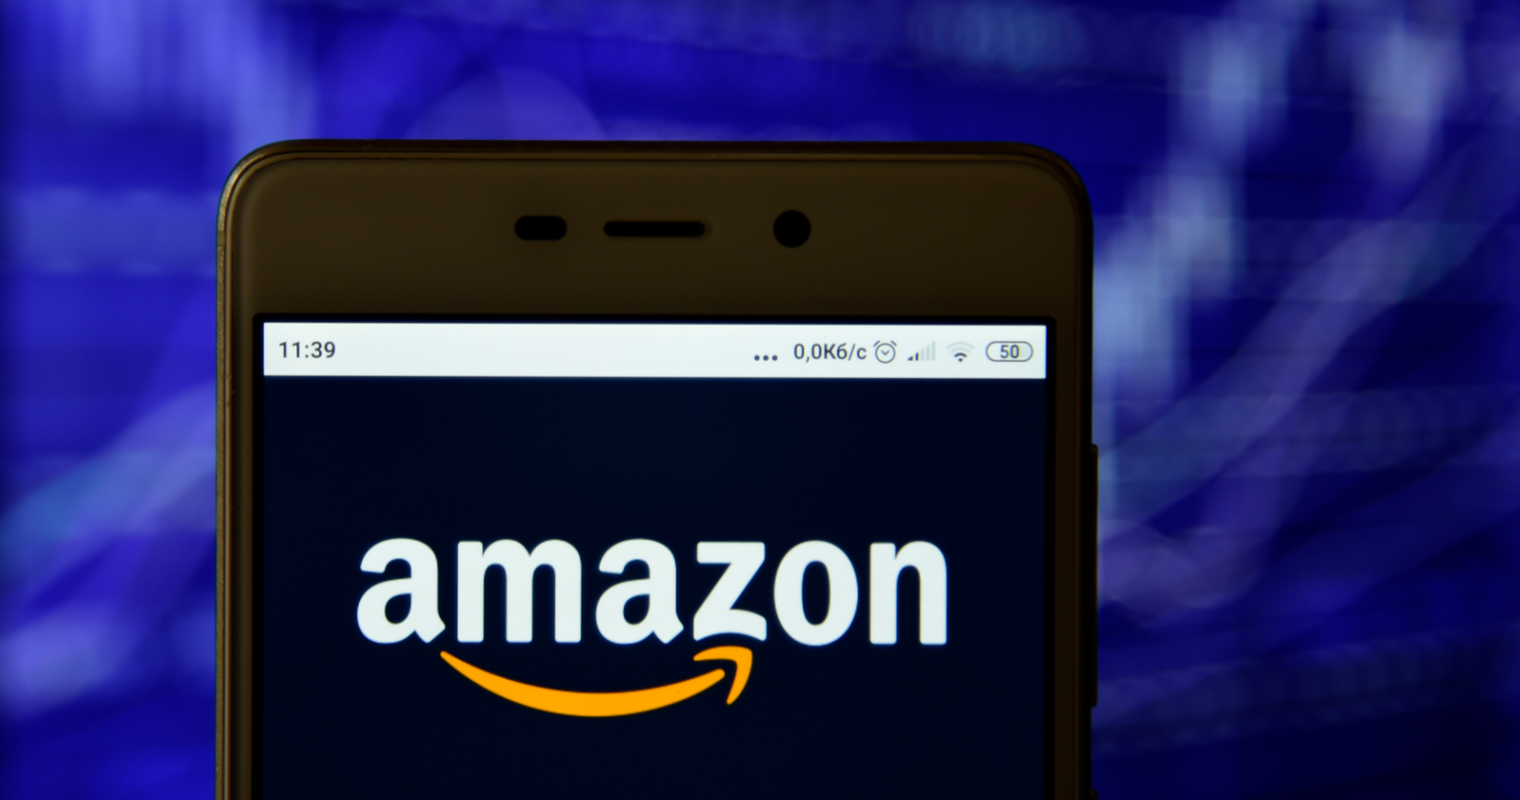 14 Conversion Rate Optimization Tactics You Can Steal From Amazon's Product Listings